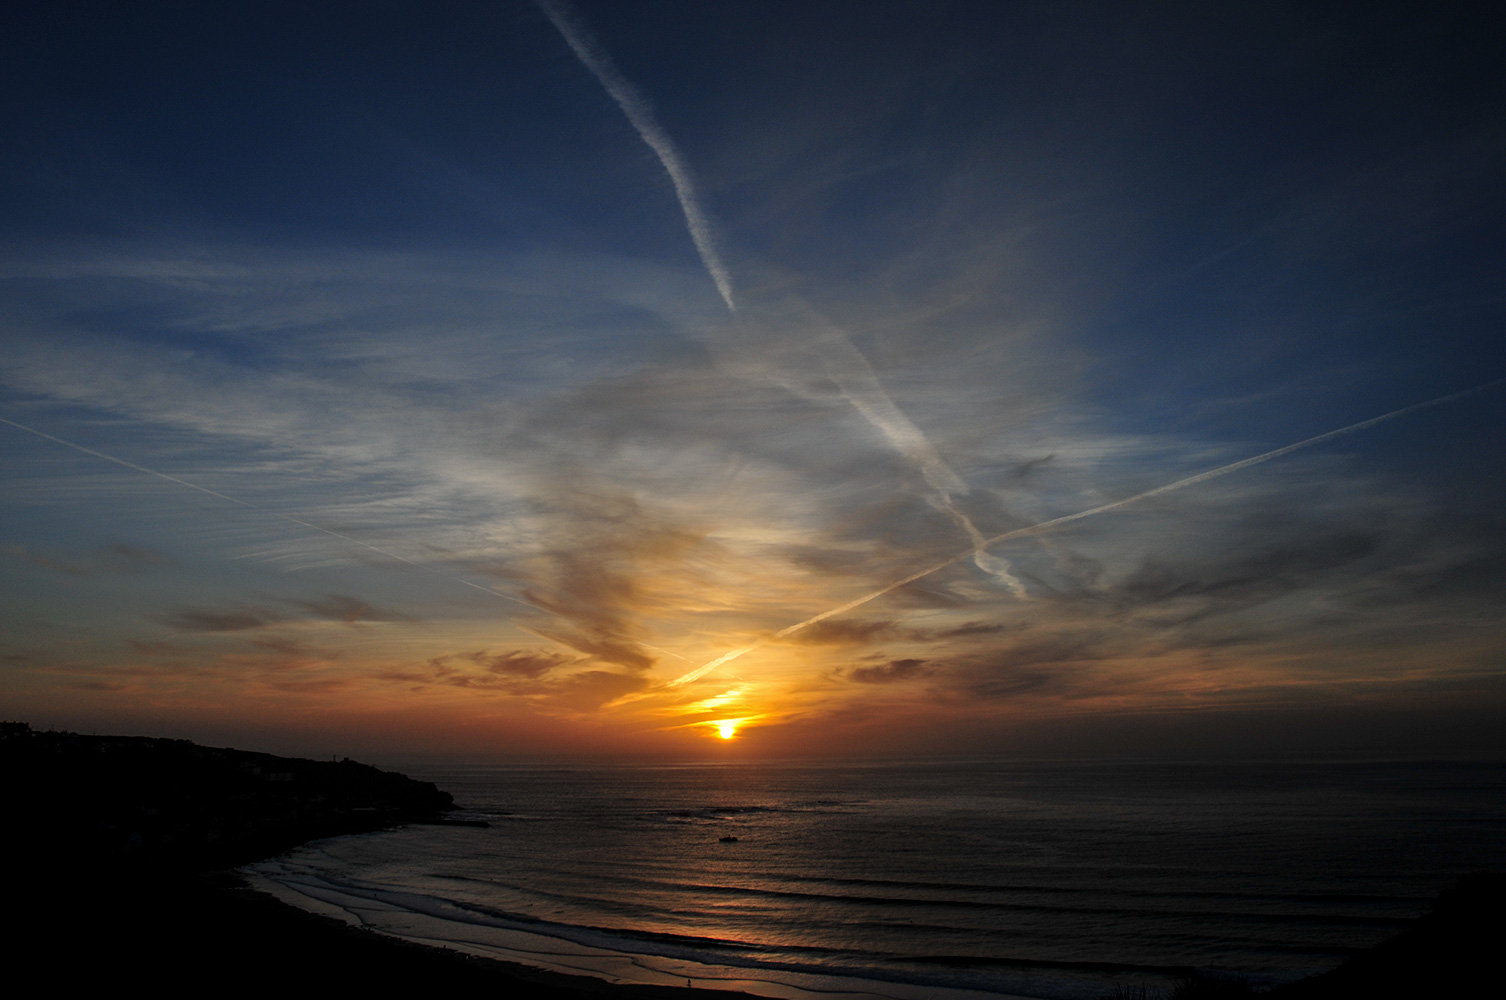 Sunset at Sennen Cove, Cornwall